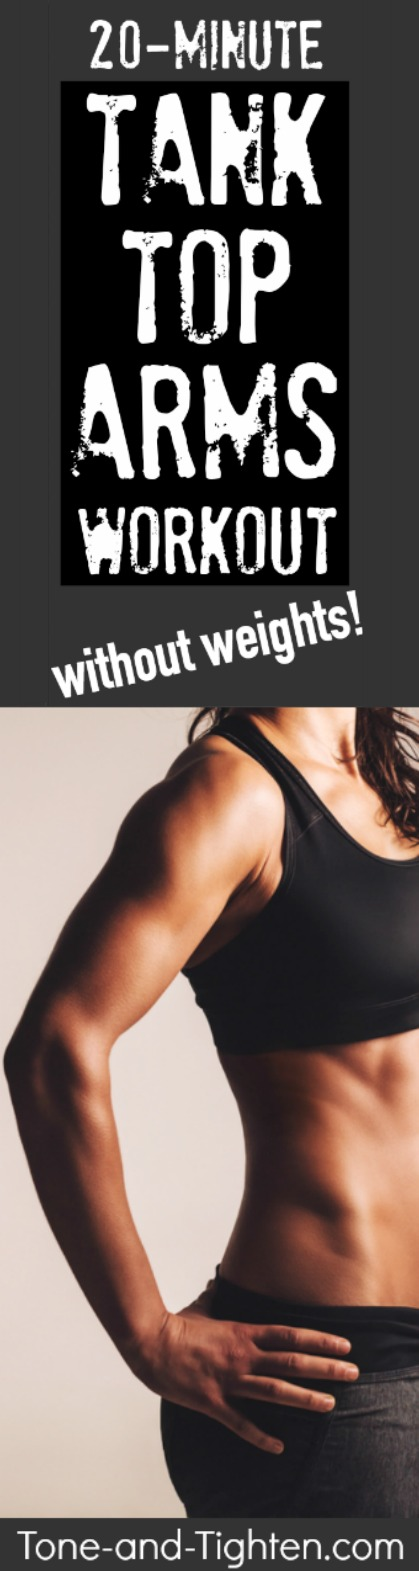 Leg Workouts Without Weights Body Building Advisor